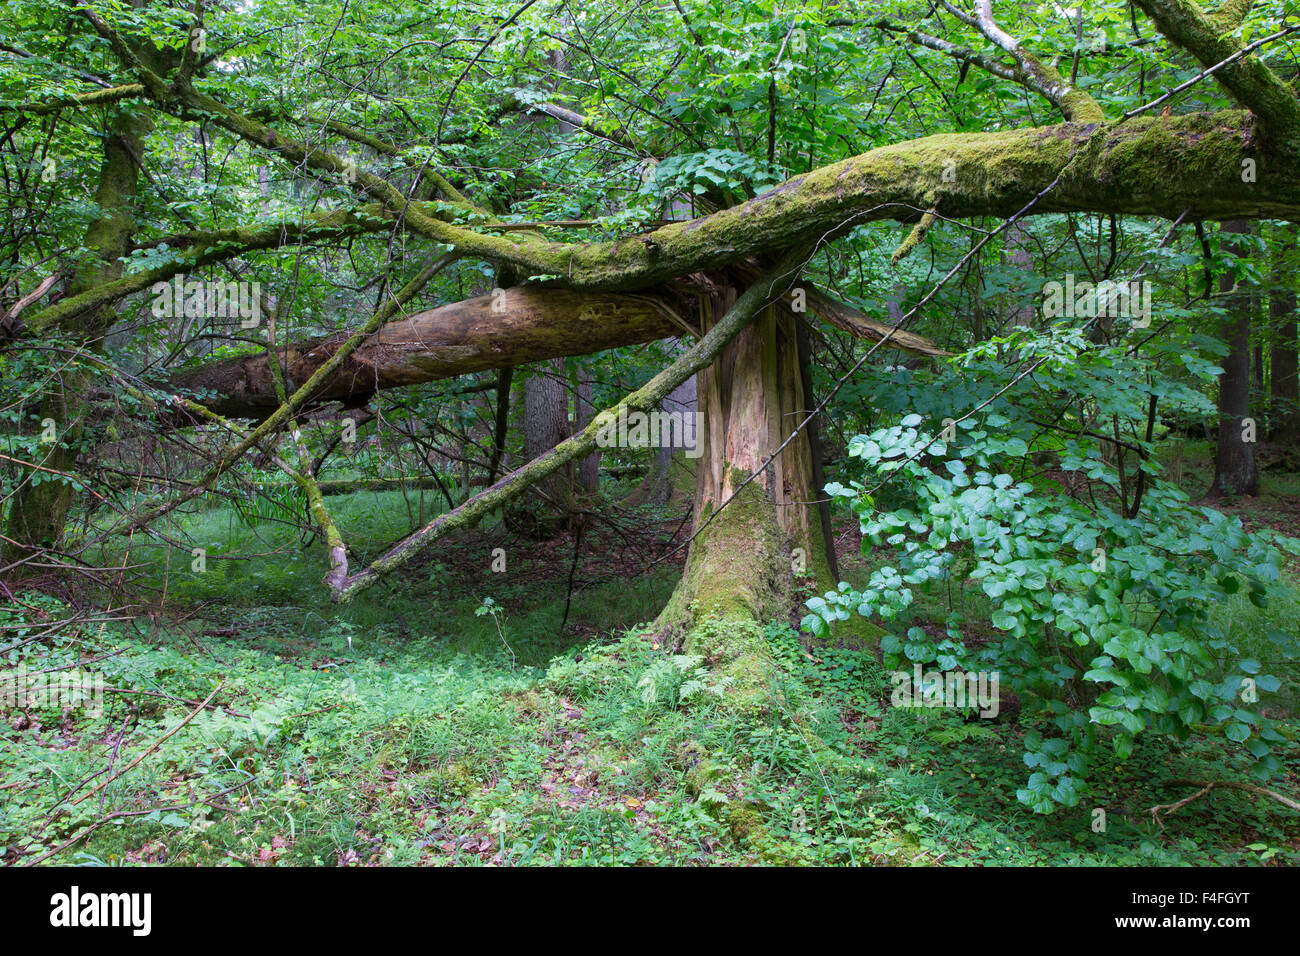 Big old spruce tree broken and another one tree moss wrapped hanging over stump,Bialowieza Forest,Poland,Europe - Stock Image